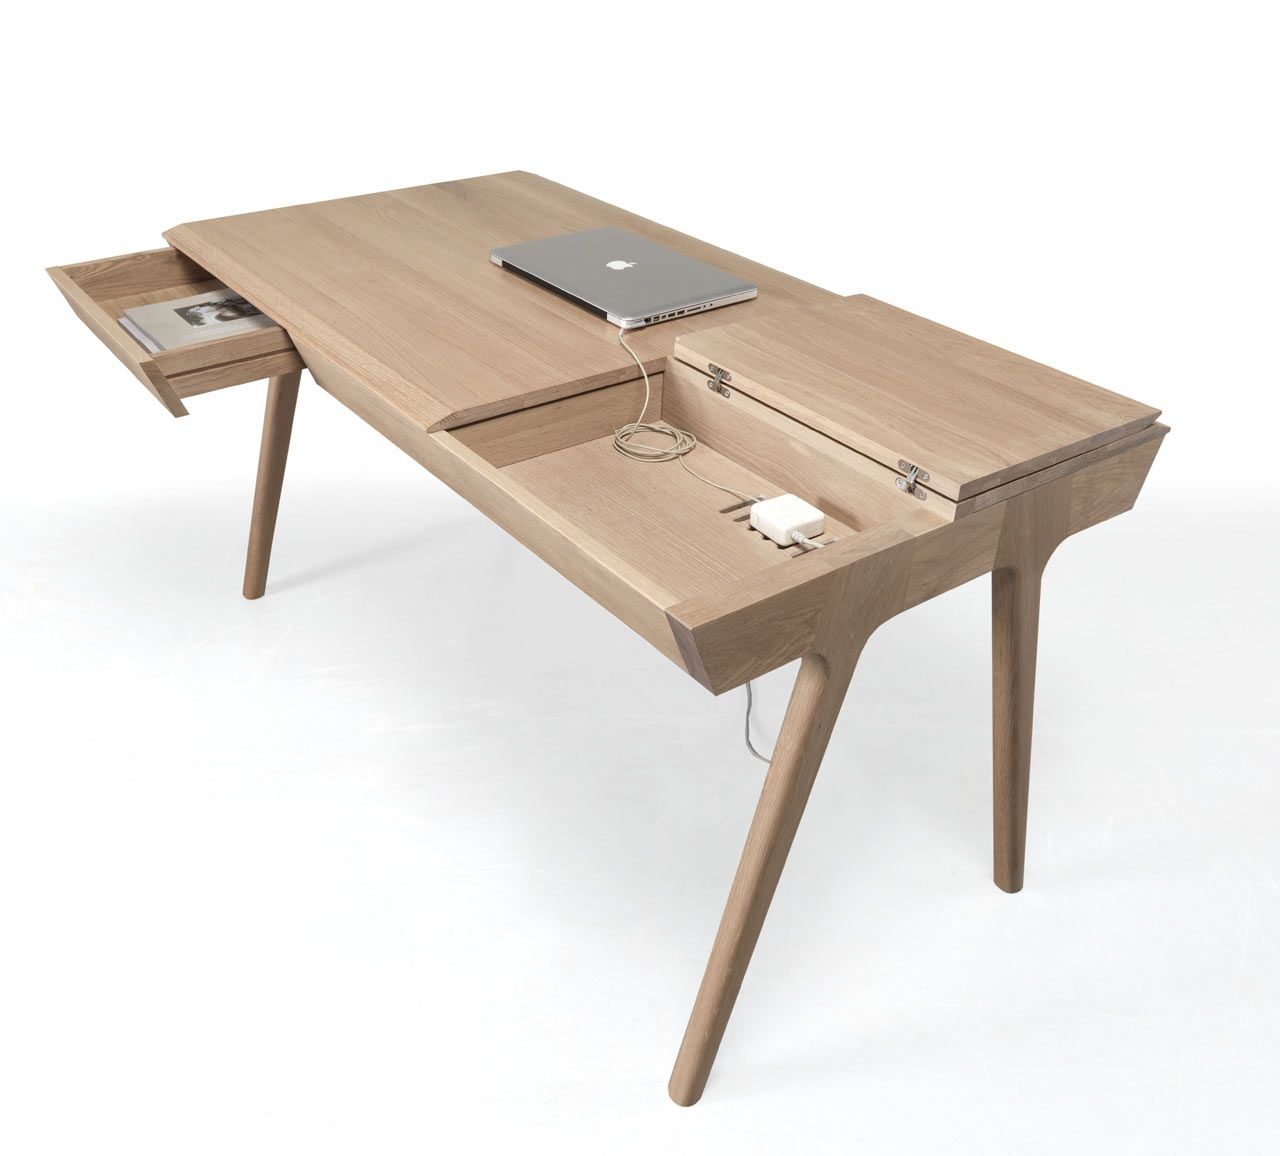 Miraculous Metis A Solid Wood Desk With Plenty Of Storage Furniture Download Free Architecture Designs Scobabritishbridgeorg